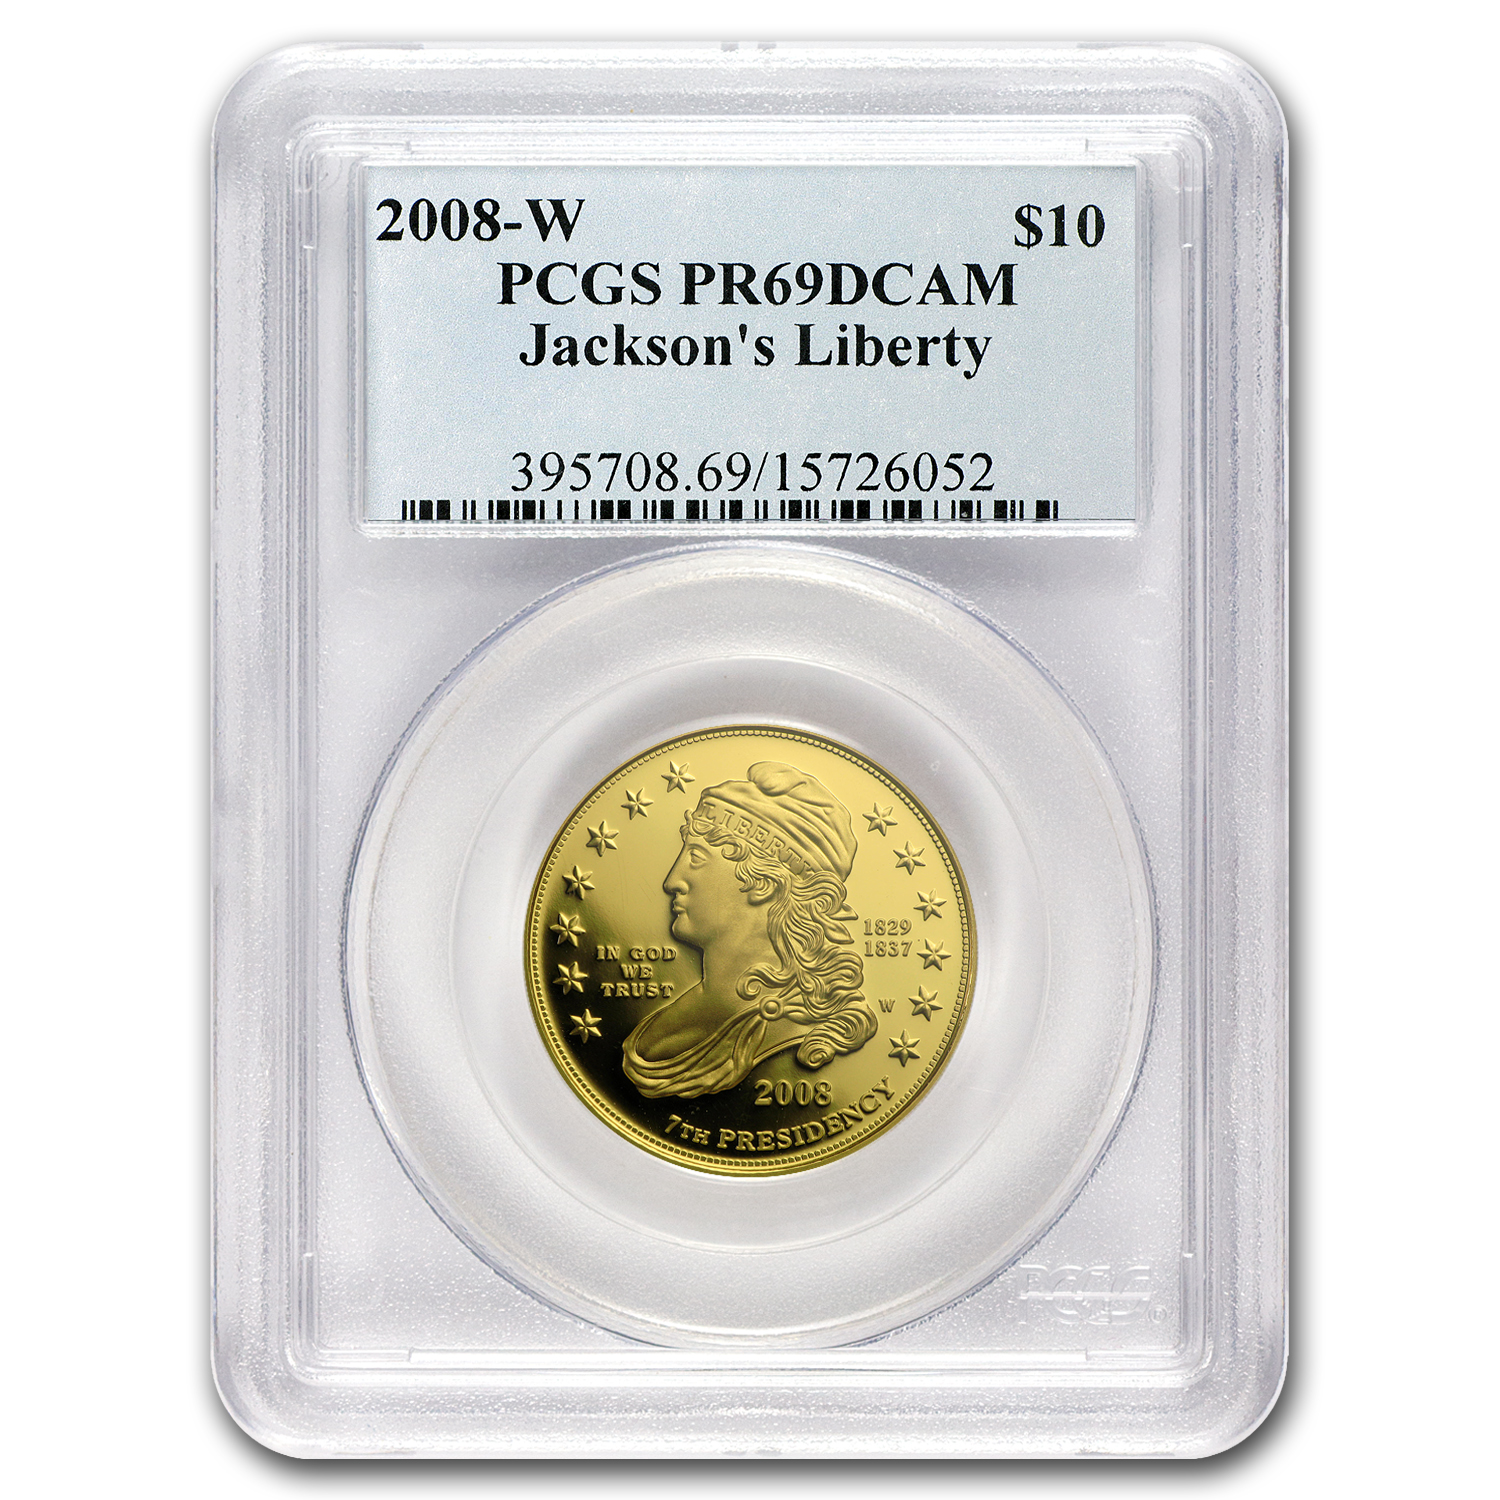 2008-W 1/2 oz Proof Gold Jackson's Liberty PR-69 DCAM PCGS